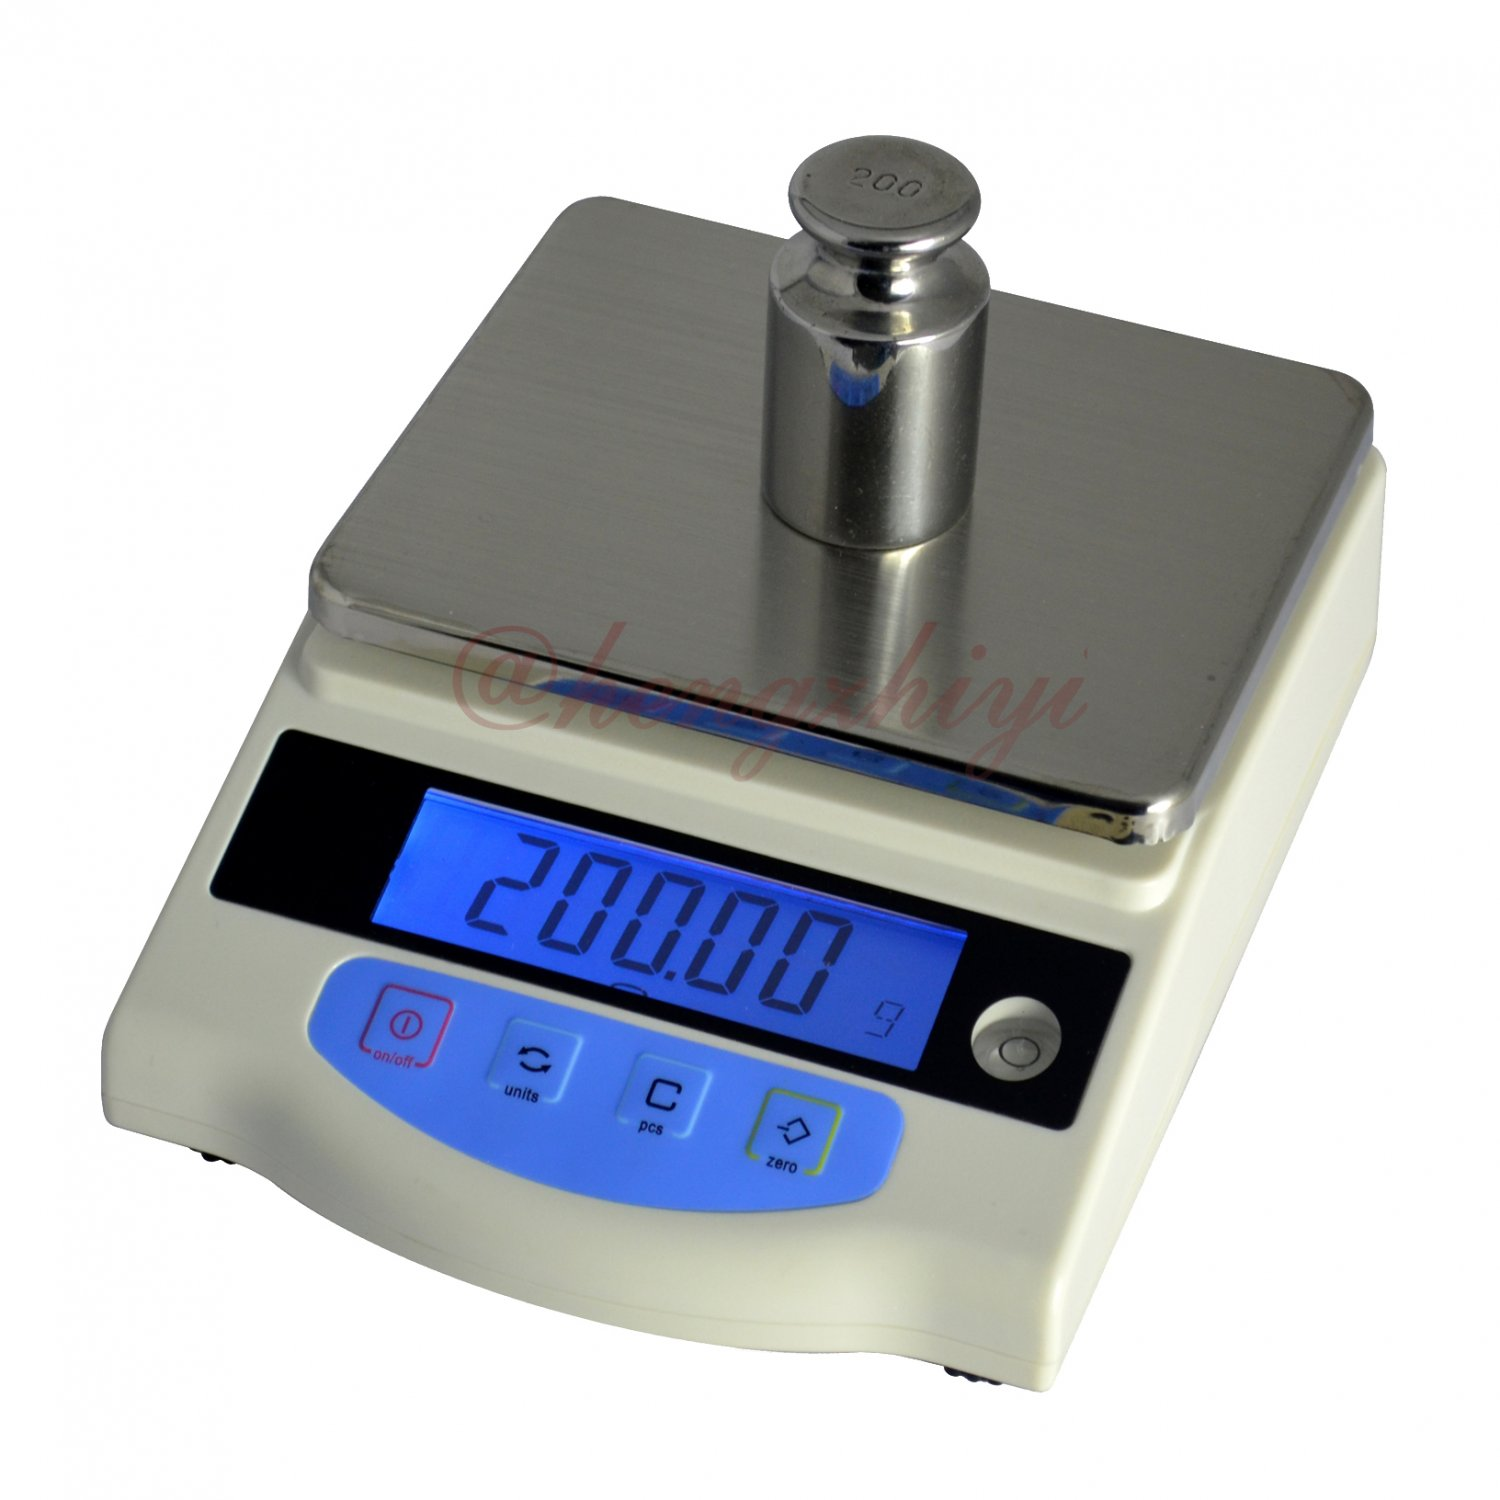 2000g x 0.01g High Precision Digital Scale Balance w Germany HBM Sensor + Counting, Free Shipping